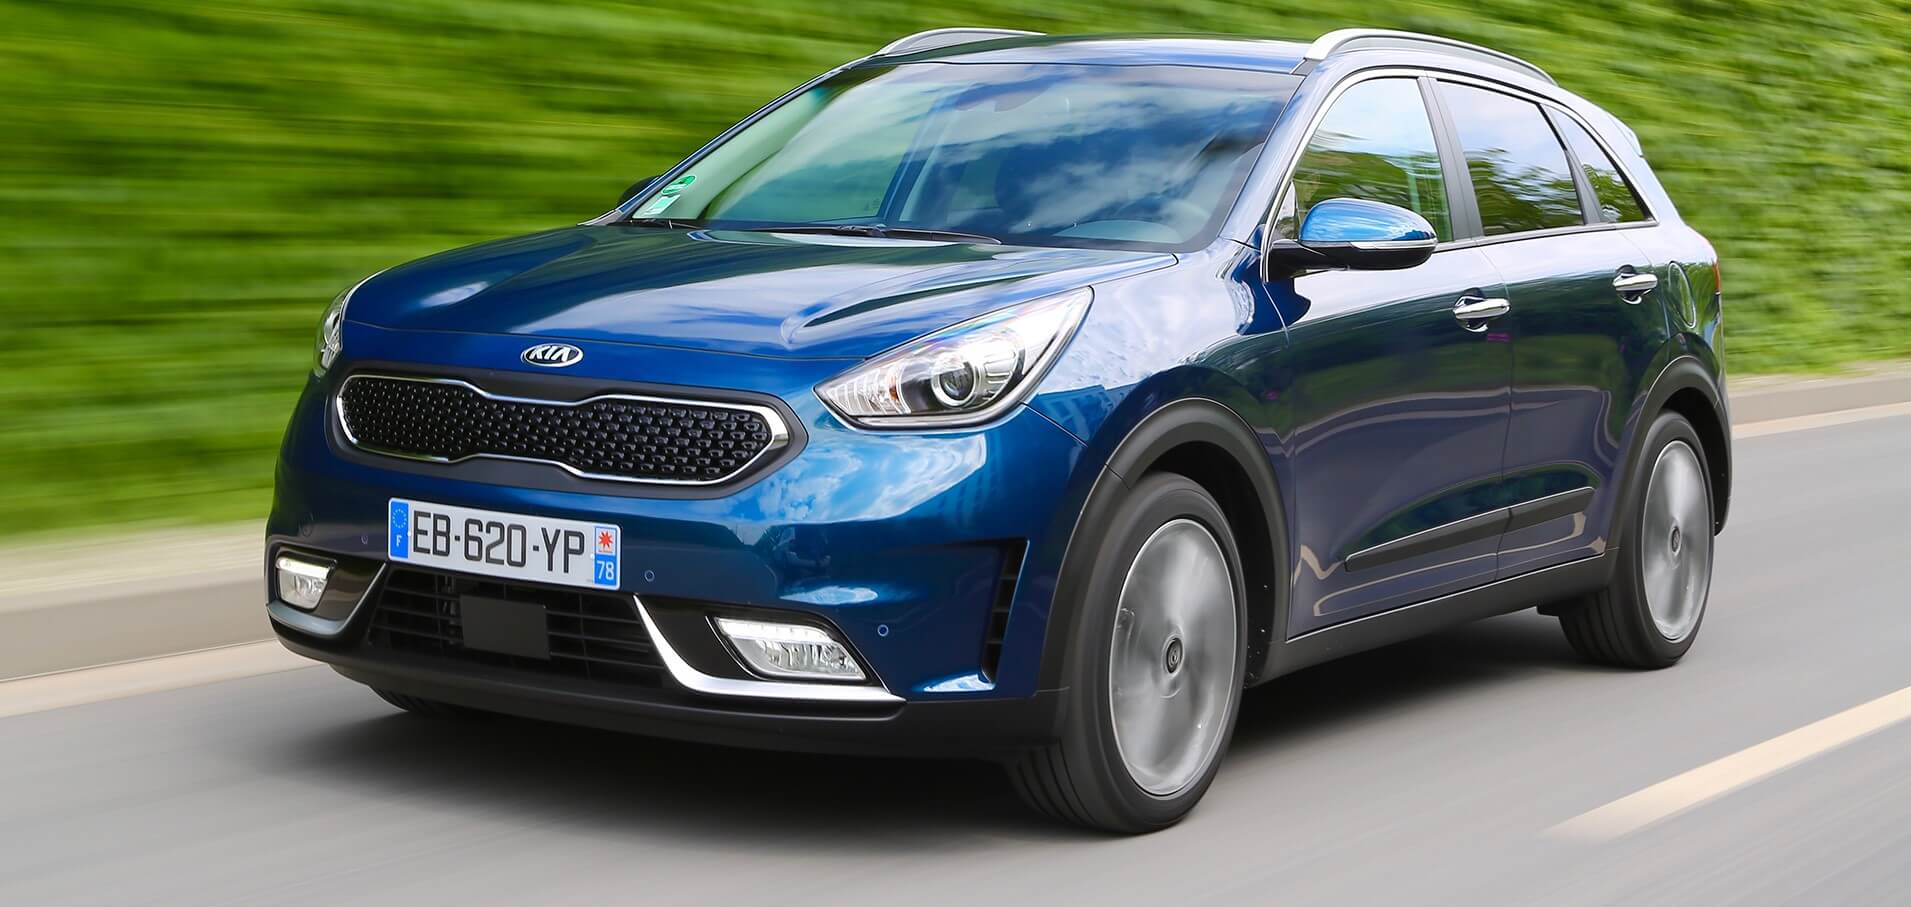 2017 Kia Niro battery interior exterior specs